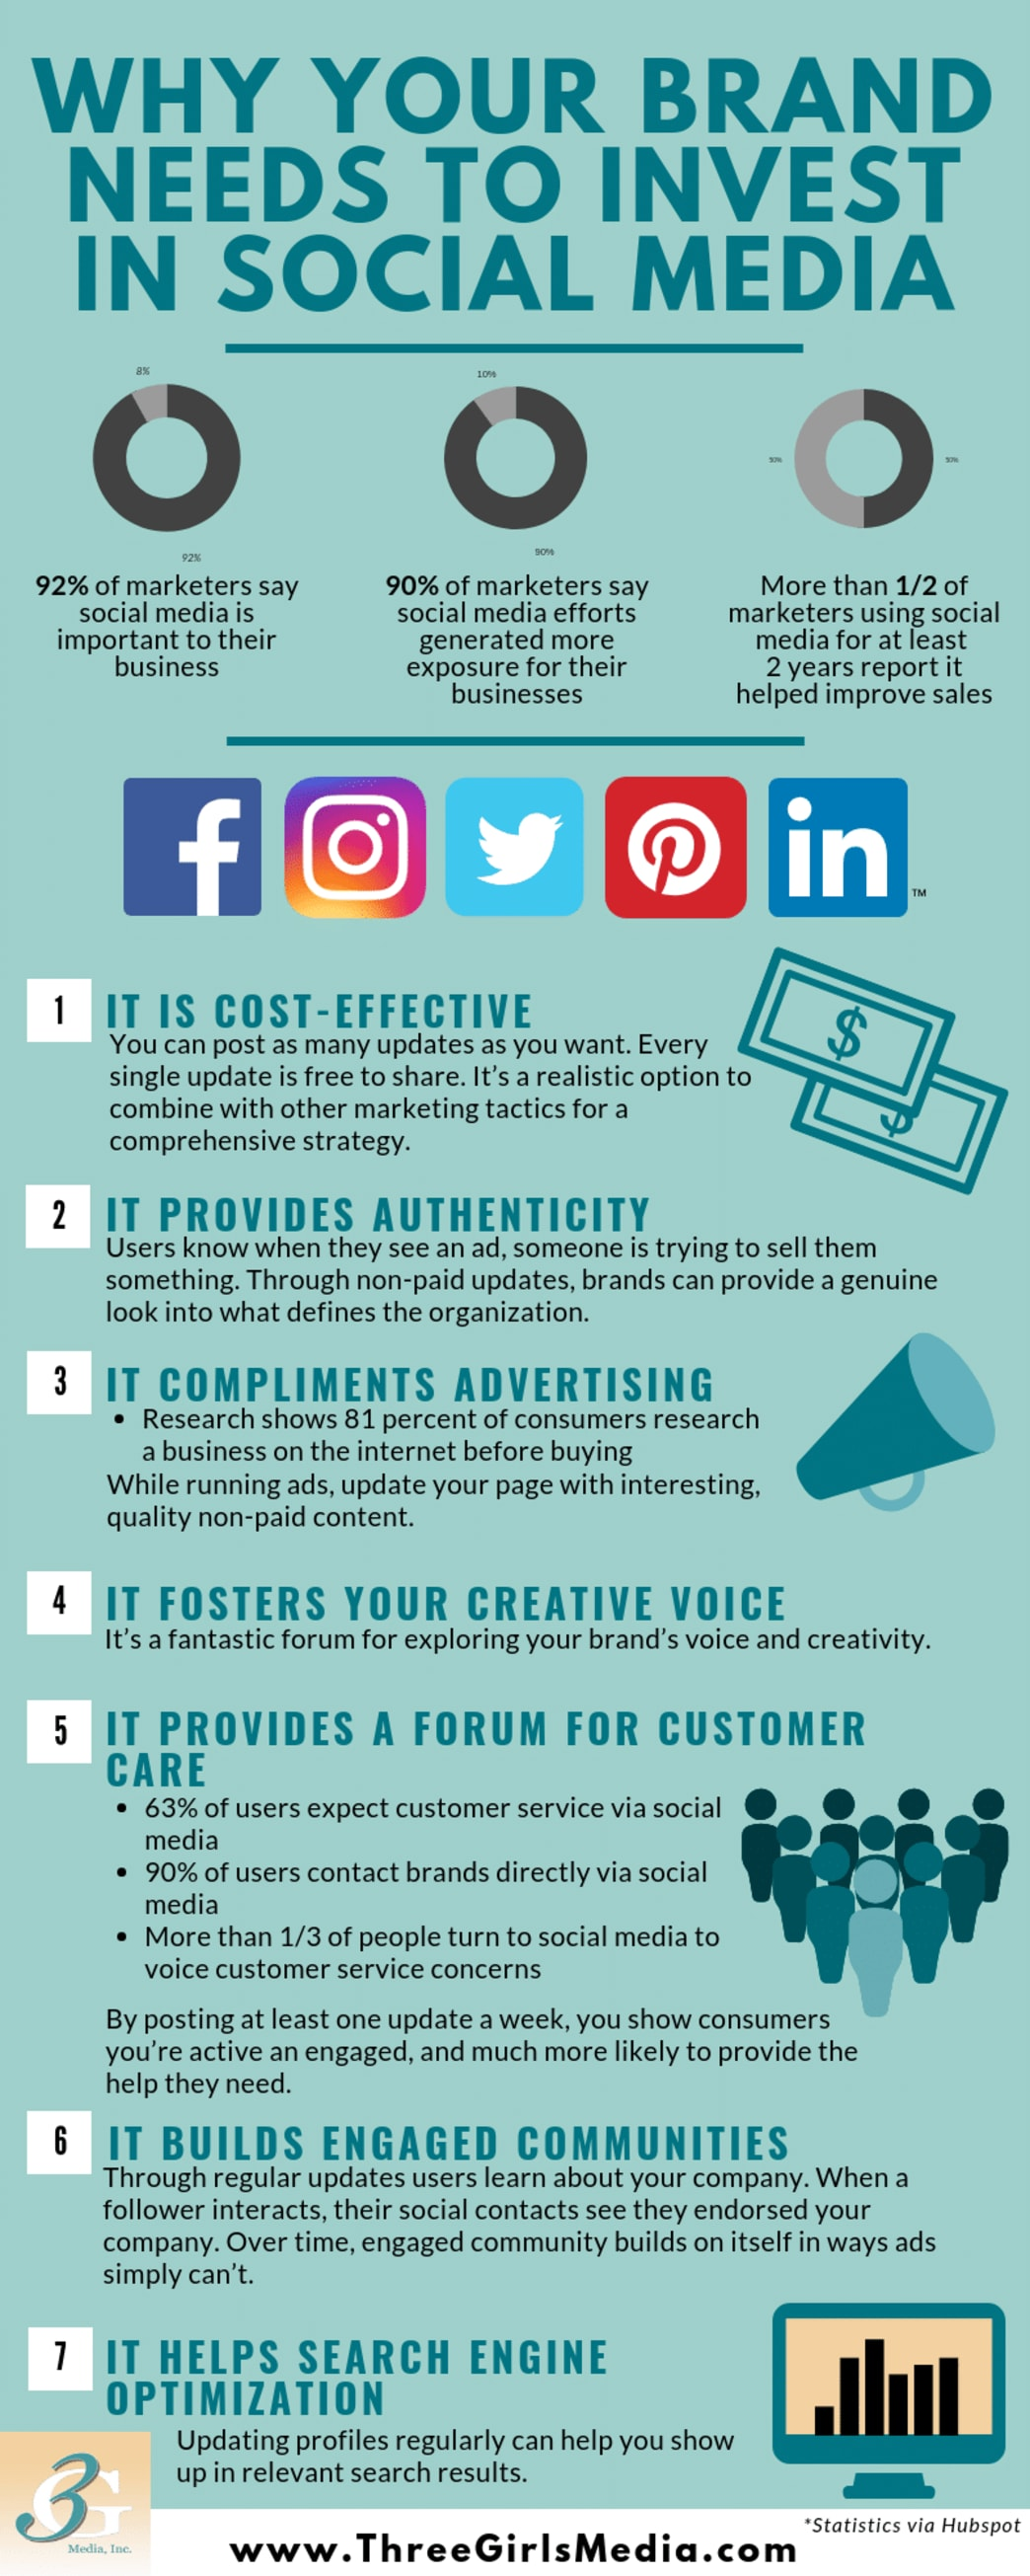 An image of an infographic about why your brand needs to invest in social media.